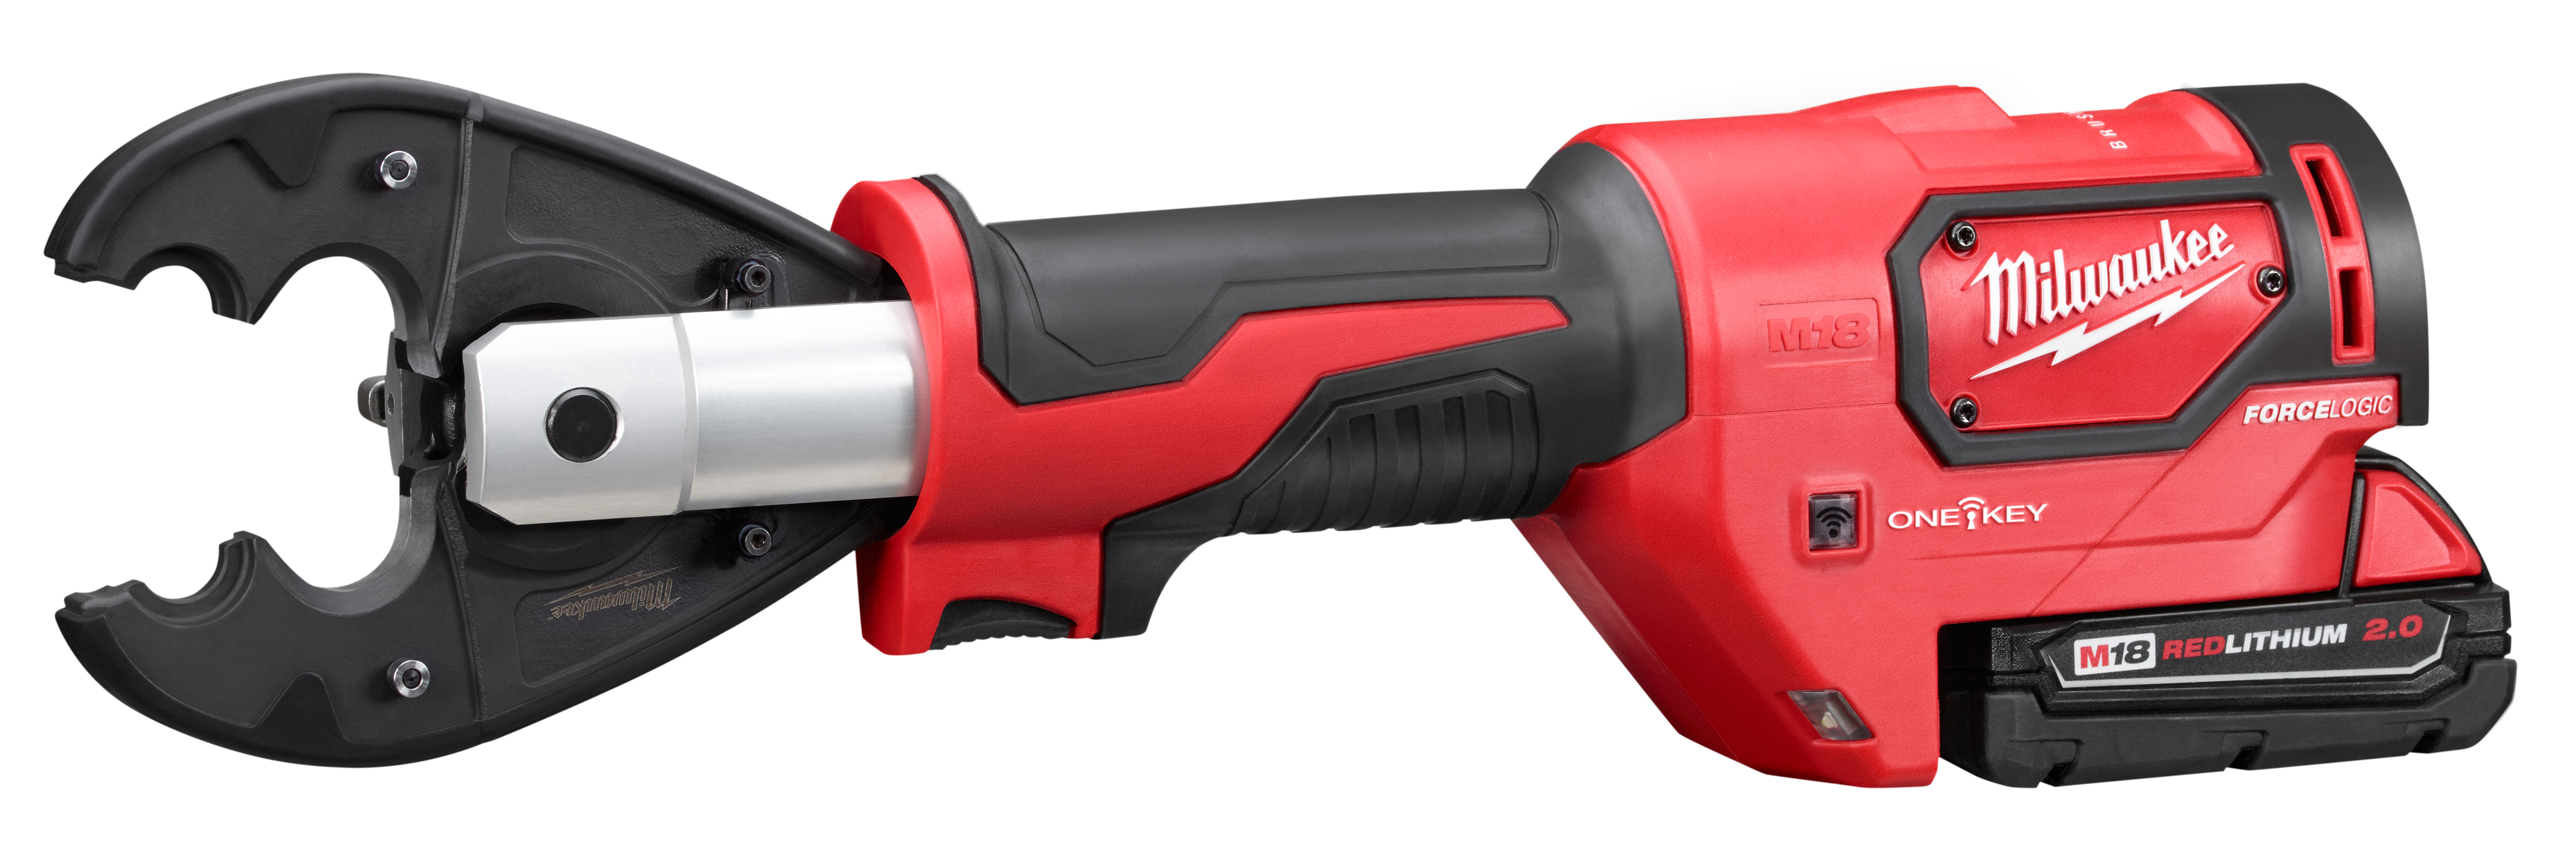 Milwaukee® M18™ FORCE LOGIC™ 2678-22BG Utility Crimping Kit With D3 Grooves and Fixed BG Die, 6 ton Crimping, 18 VDC, Lithium-Ion Battery